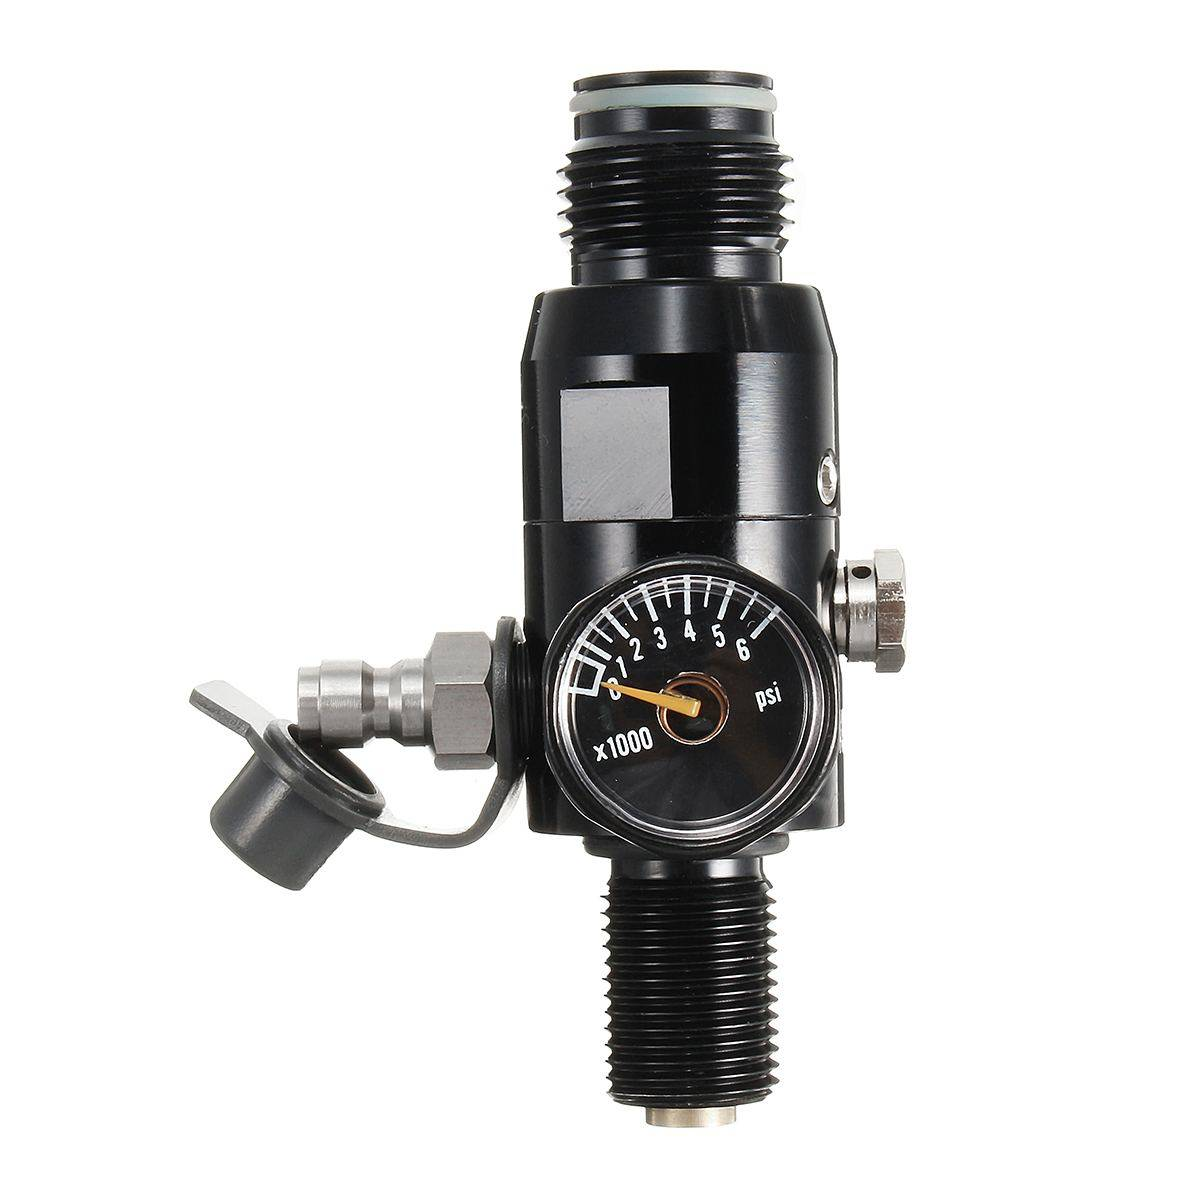 N Paintball 4500psi HPA High Compressed Air Tank Regulator Valve 2200psi U D